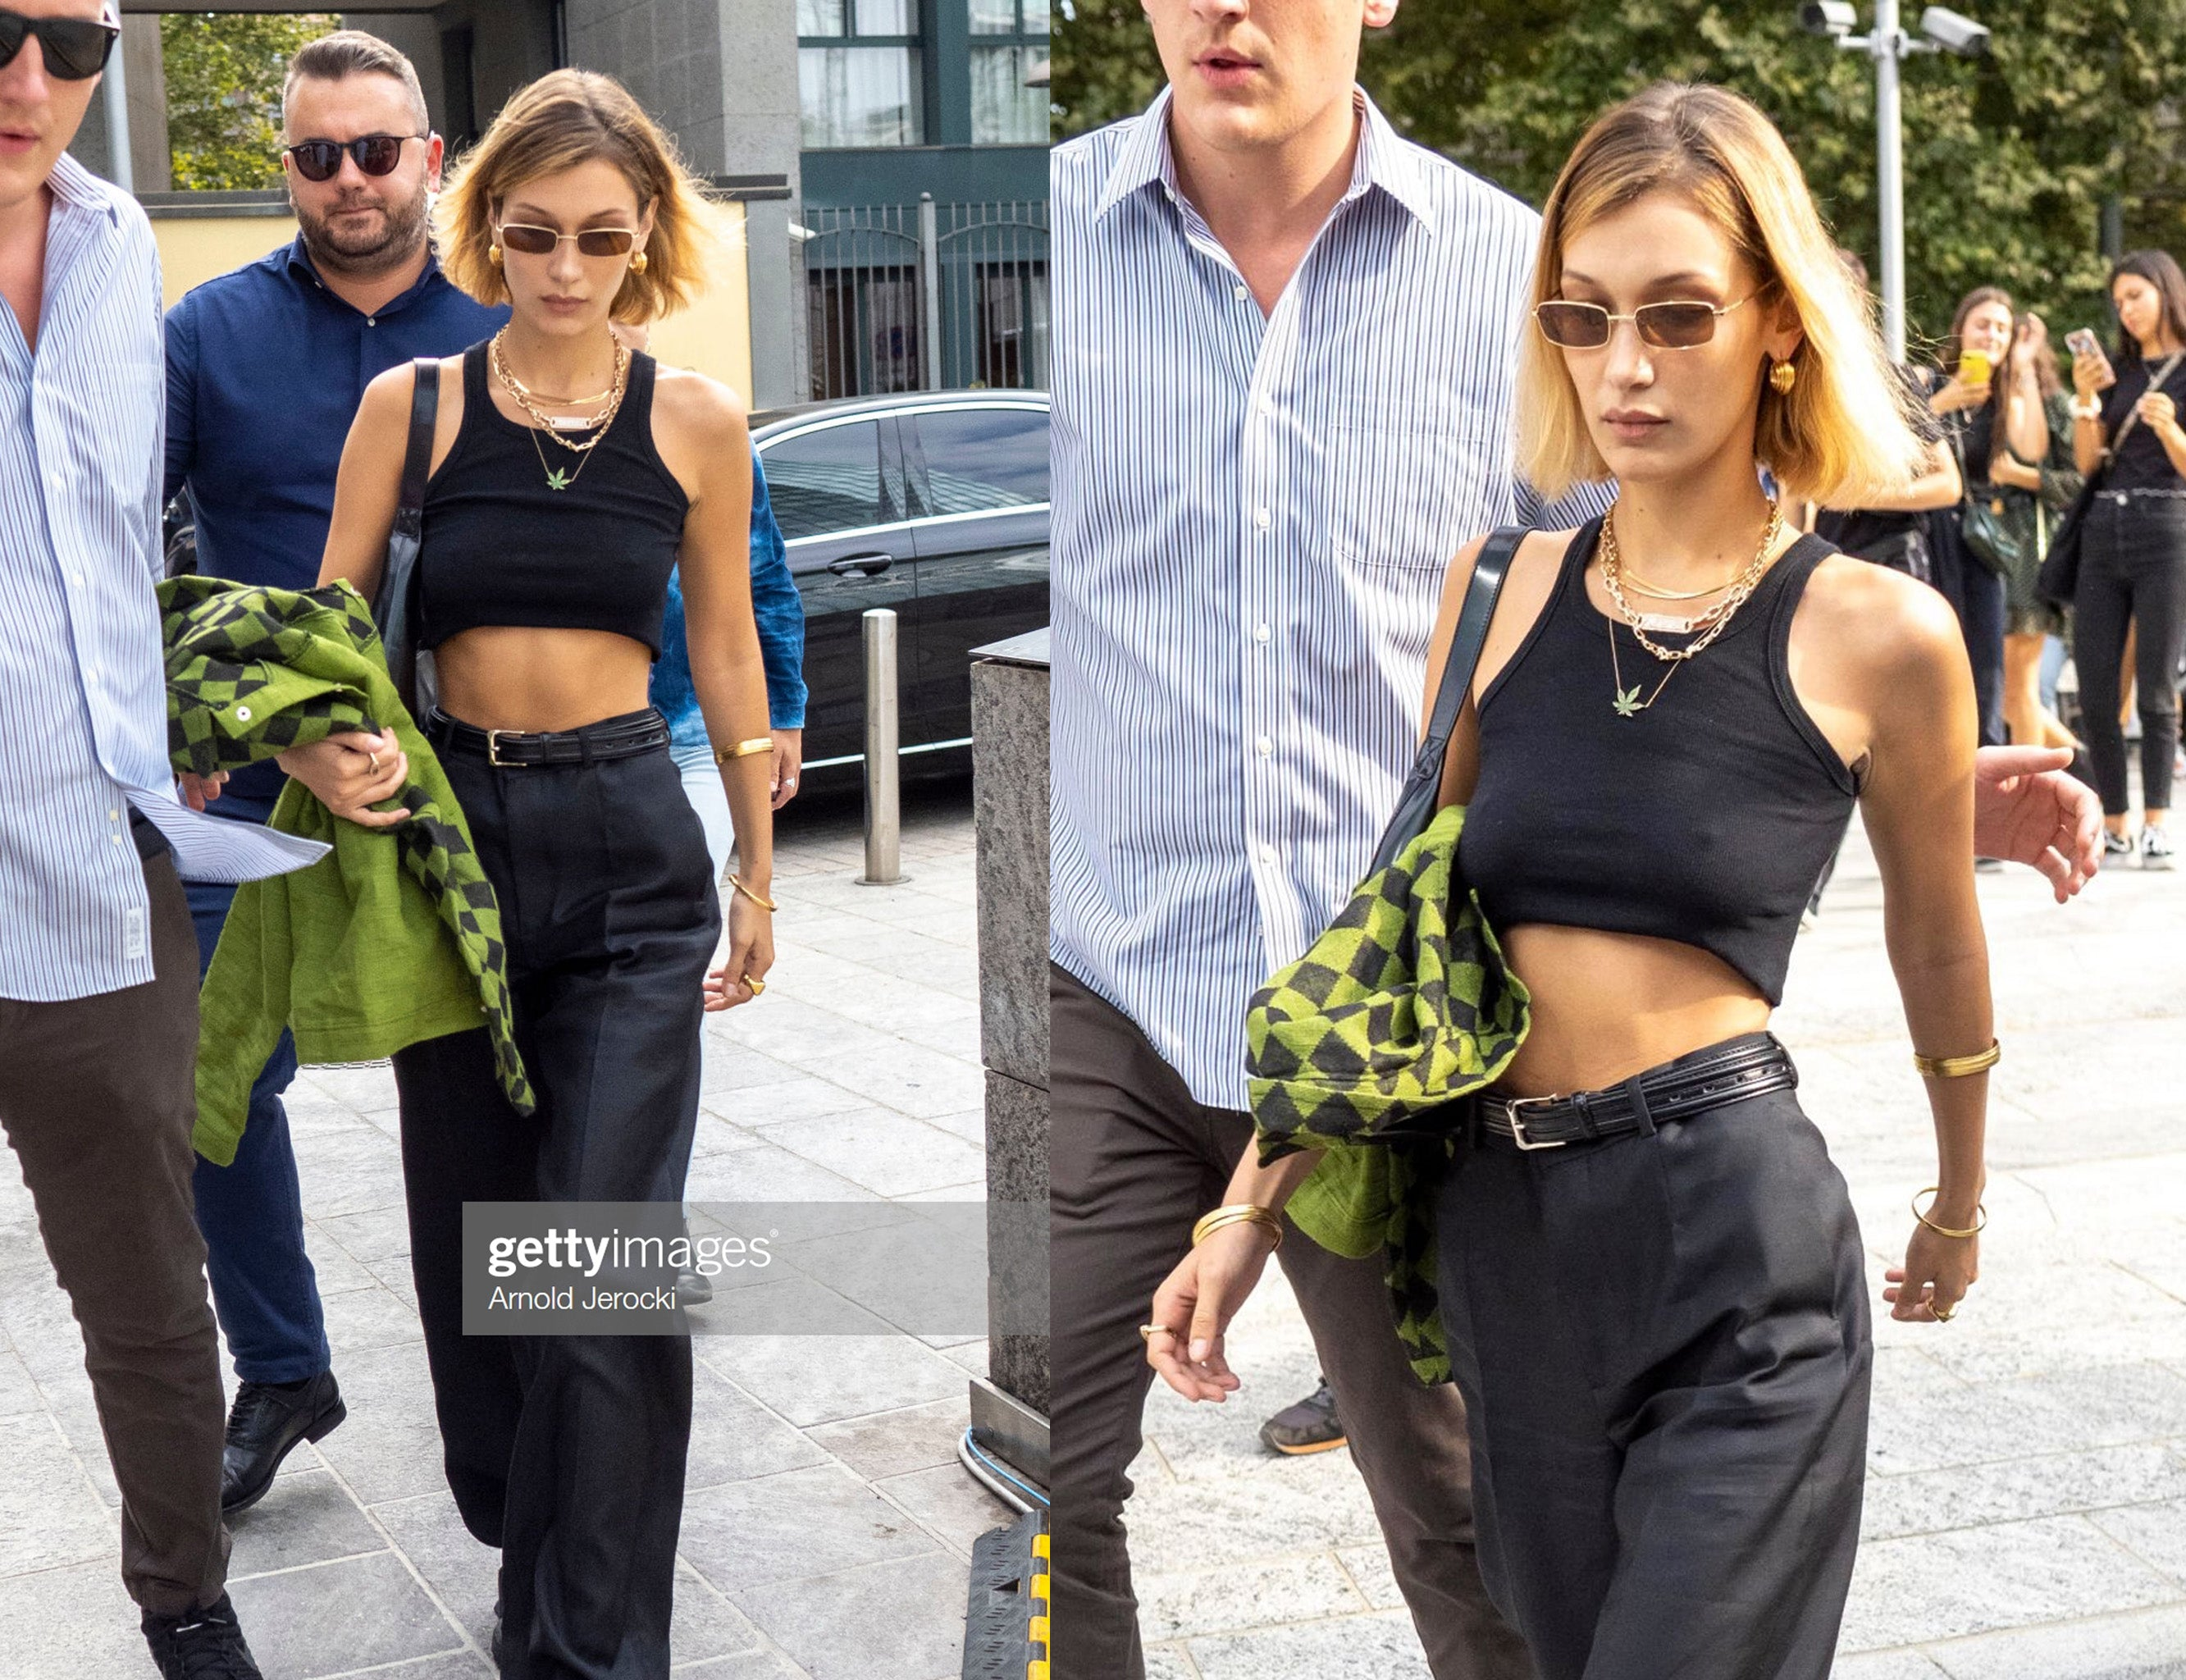 Bella Hadid leaving Alberto Ferrari show in Milan wearing Avila by dn rue tank crop top Milan fashion week mfw